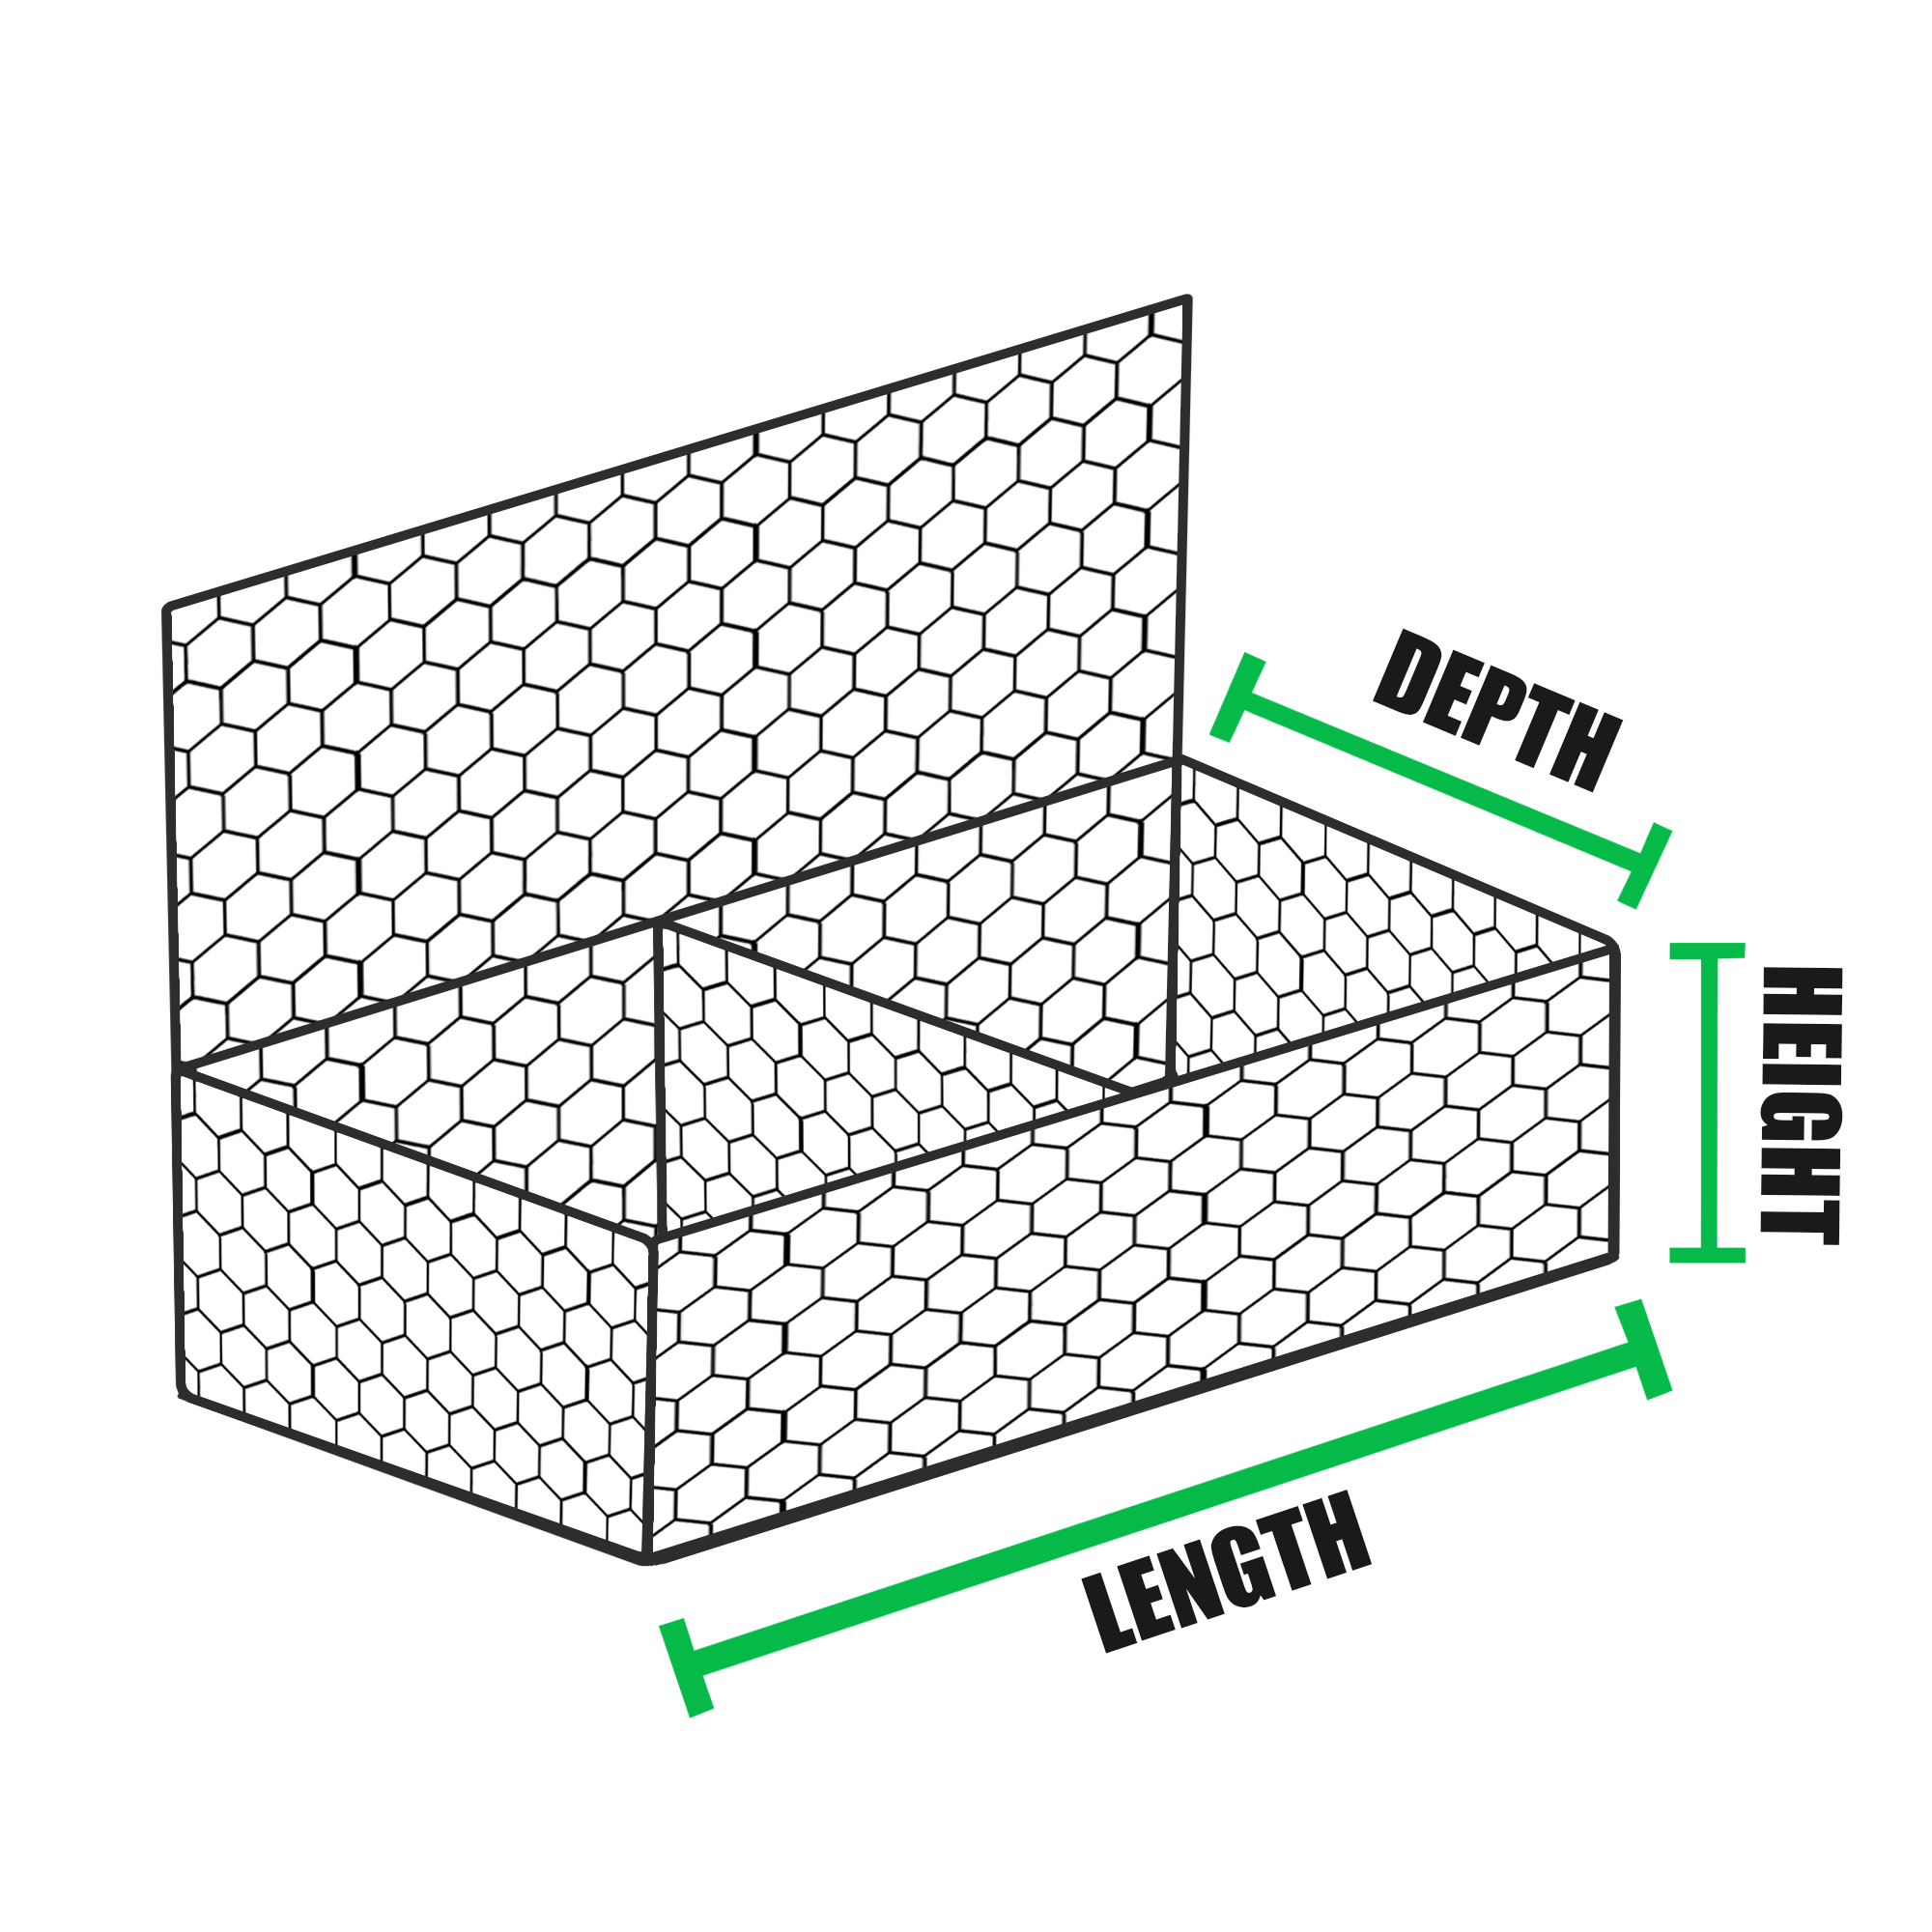 gabion-mattress-dimensions-diagram